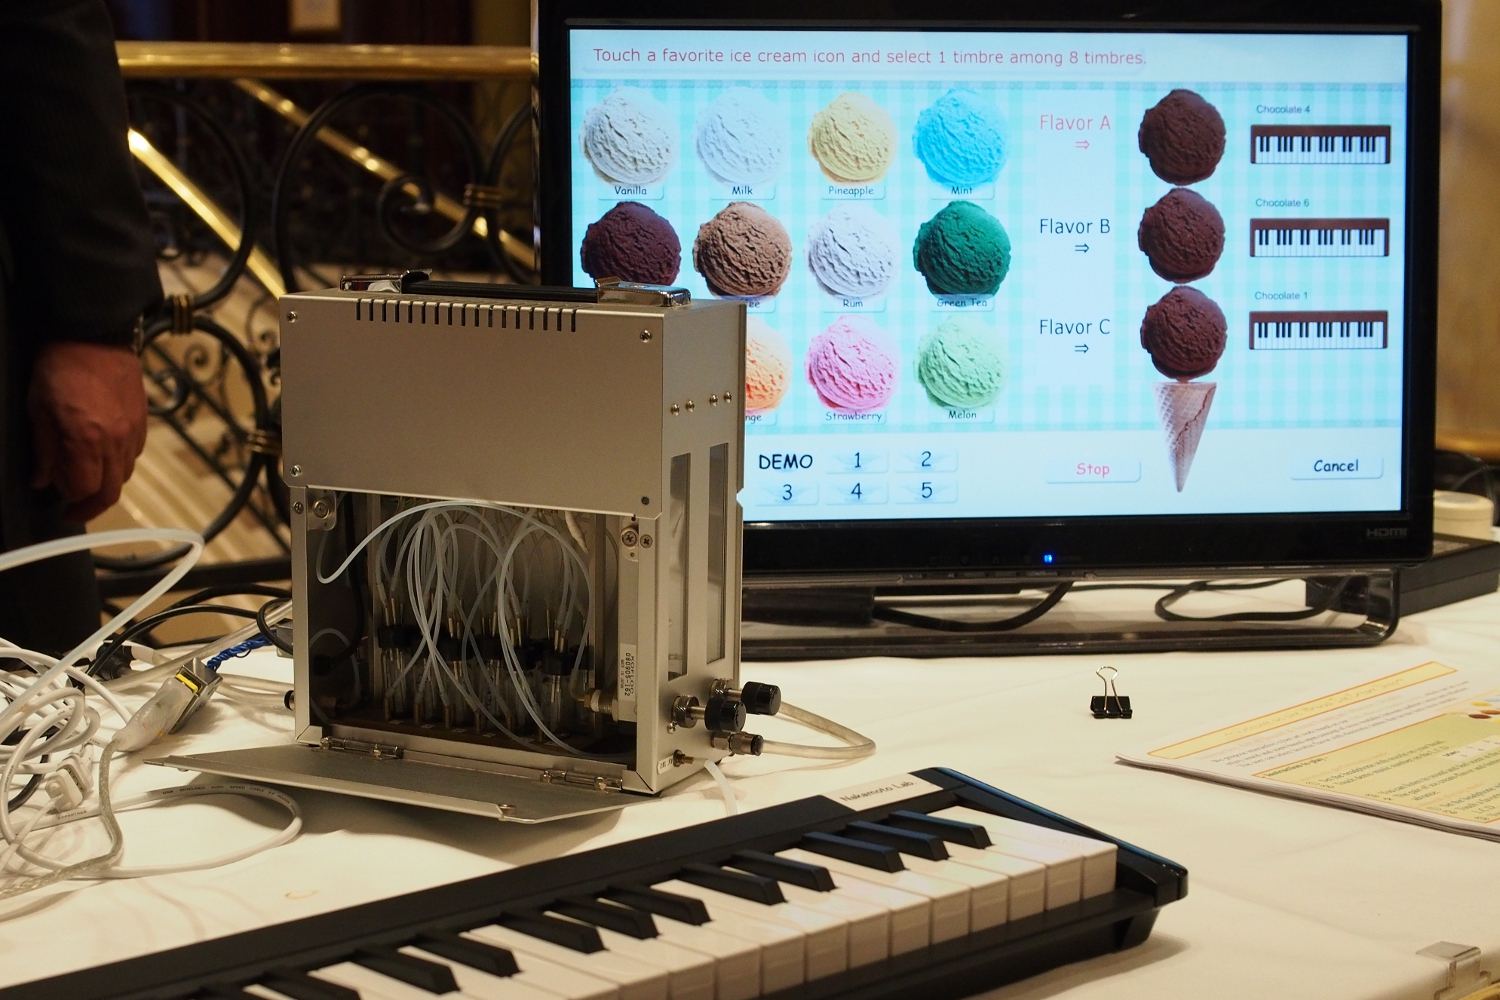 Takamichi Nakamoto's Virtual Ice Cream Shop